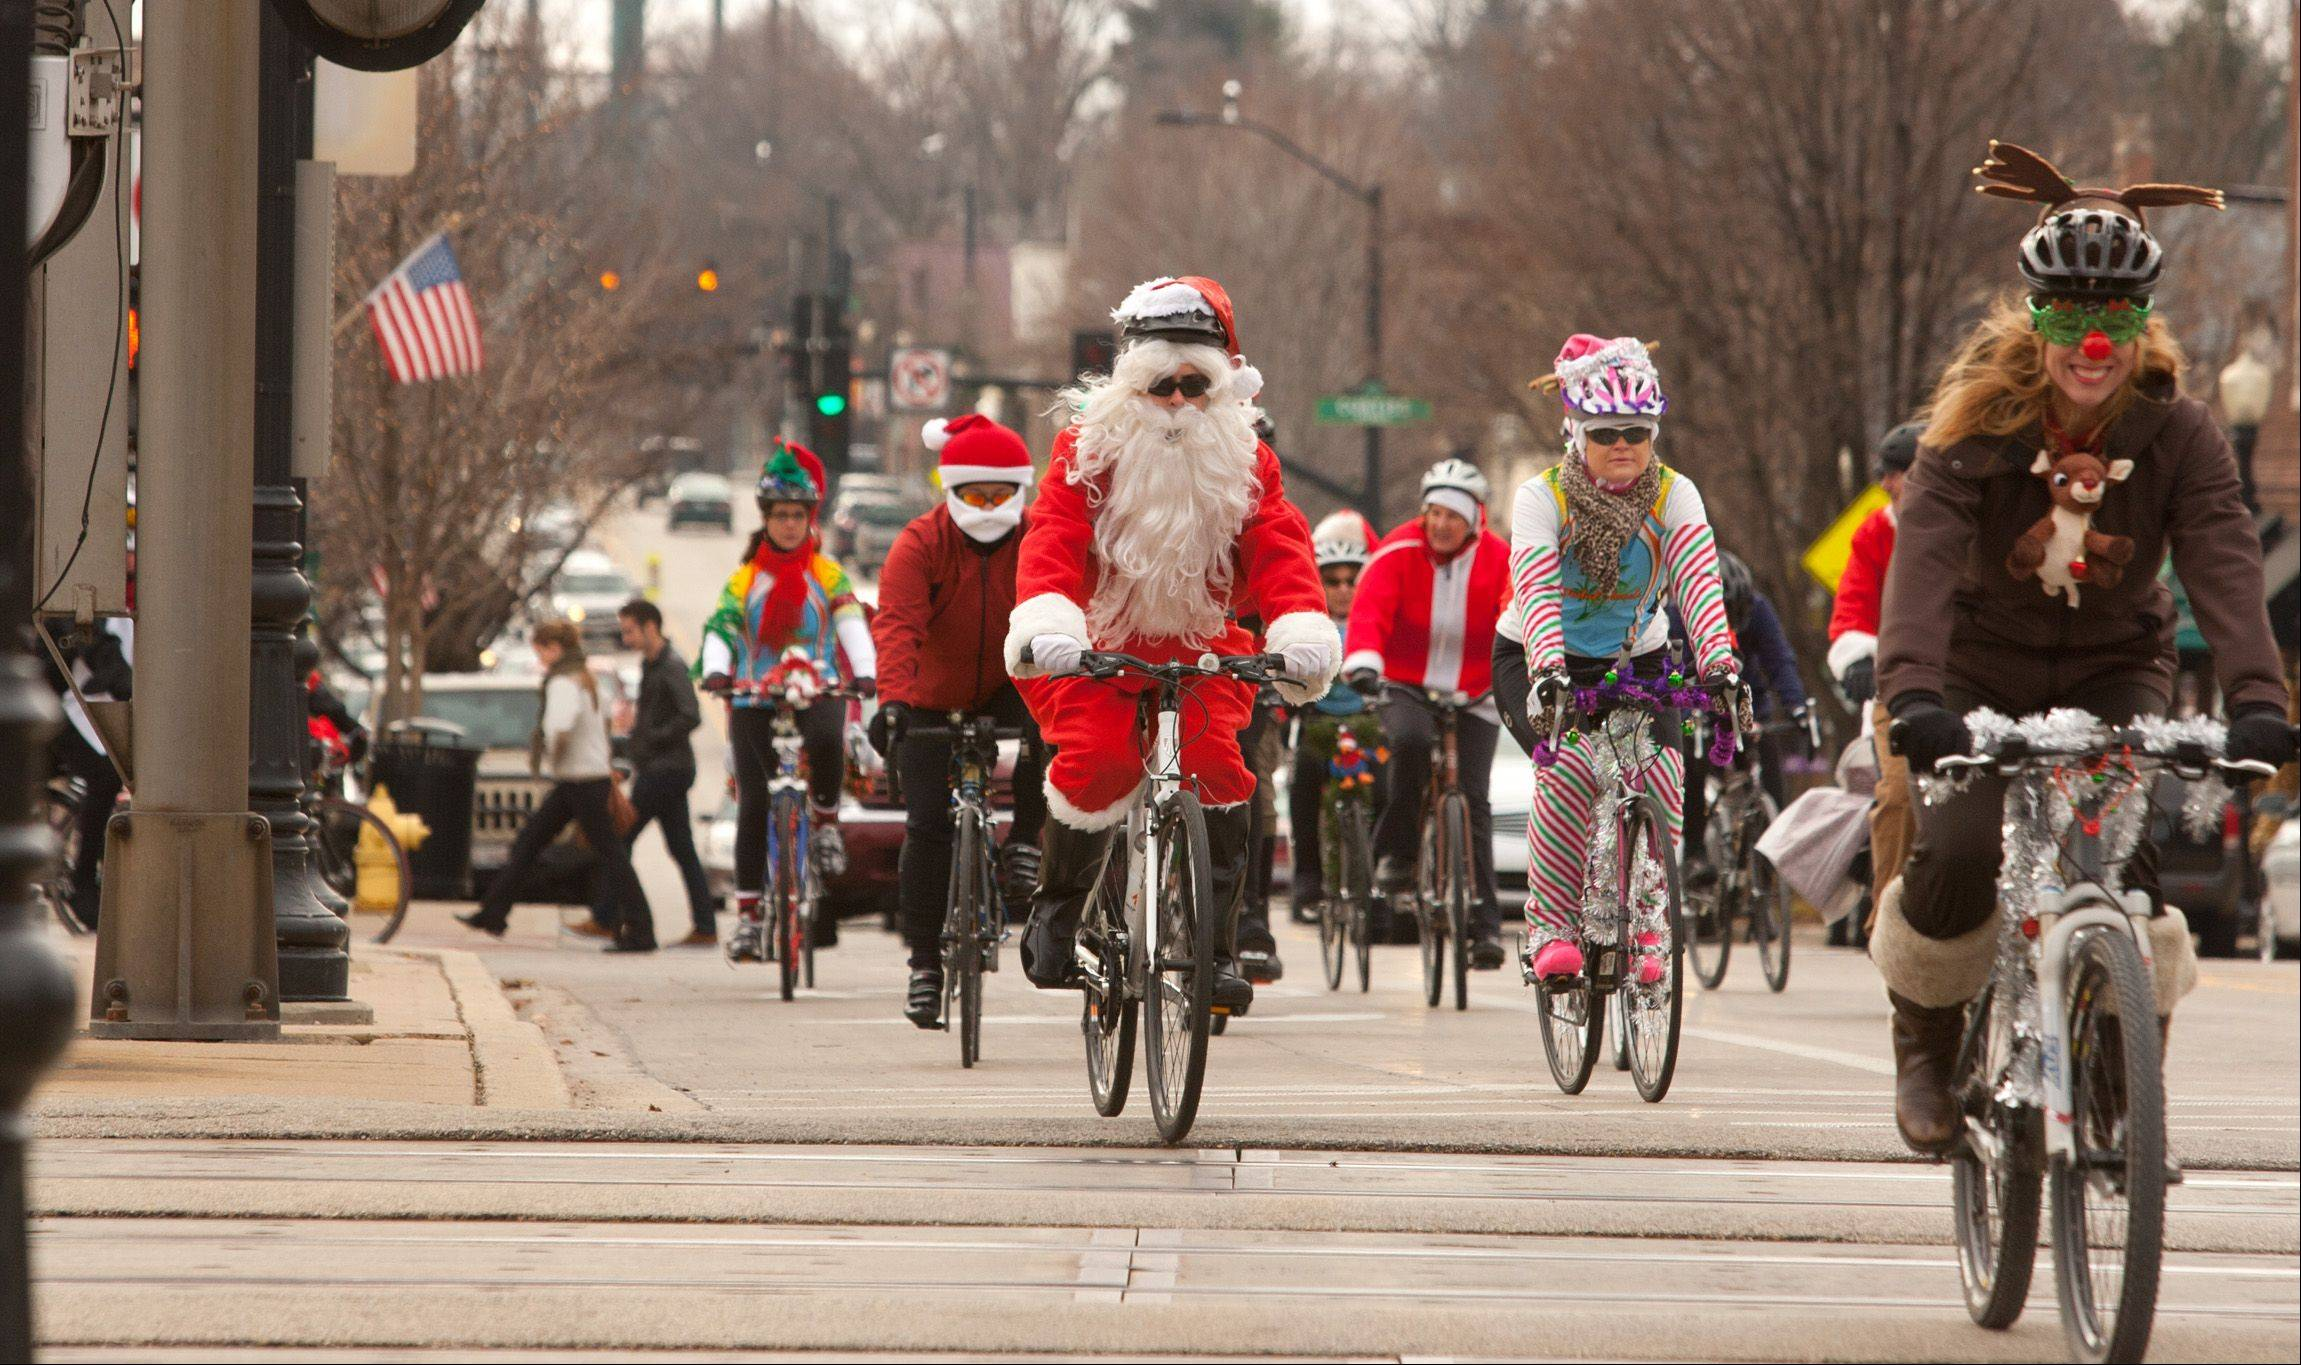 Members of the Pedalheads cycling club ride Saturday morning on Main Street in downtown Downers Grove toward Good Samaritan Hospital, wearing Santa suits to deliver gifts to hospitalized children. Vicky Tate, right, leads the group.